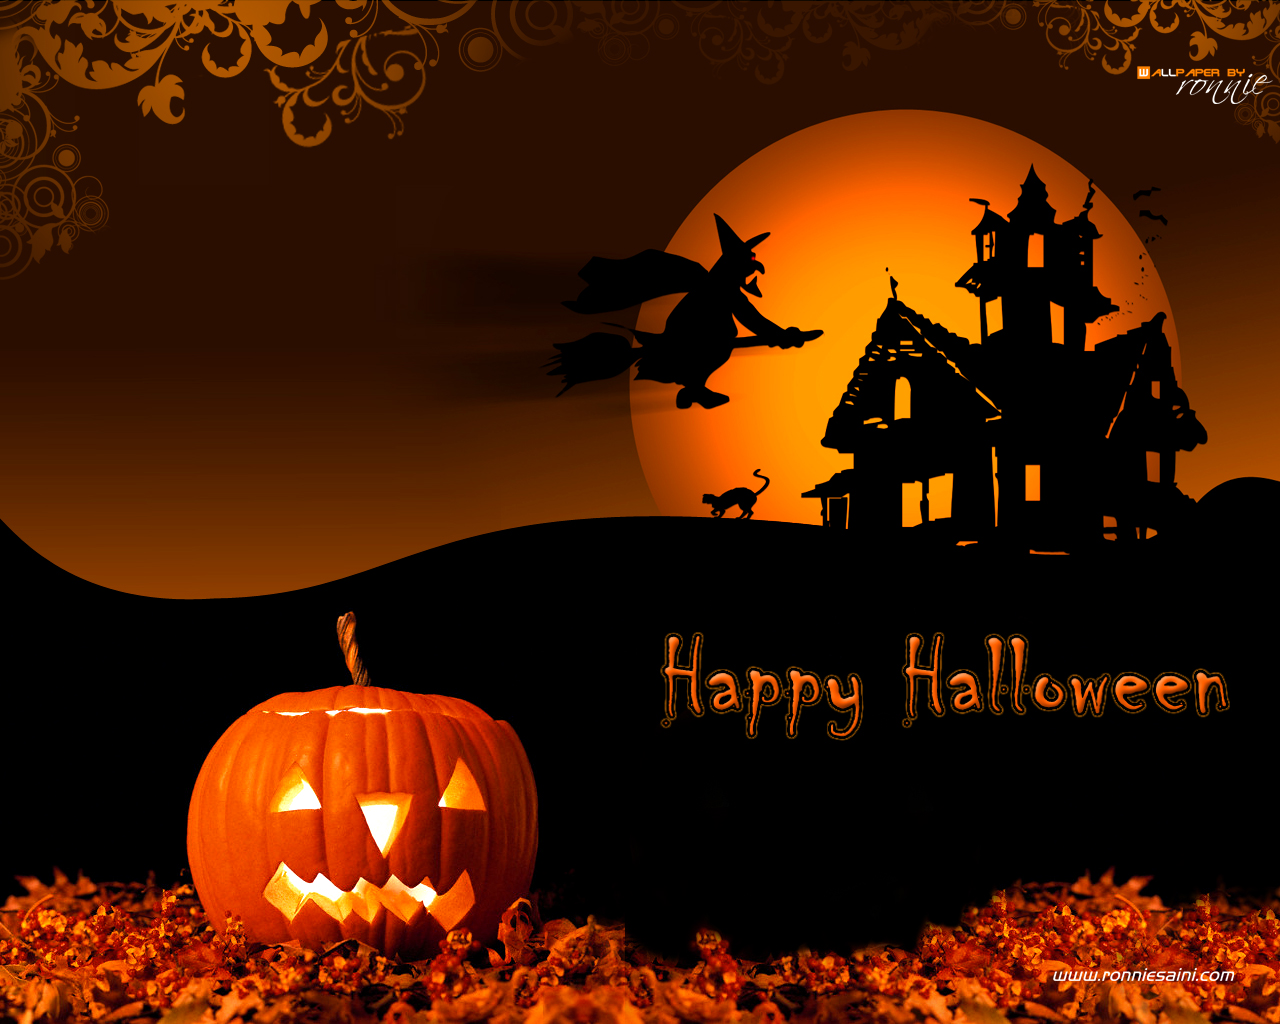 Free Desktop Halloween Wallpaper - WallpaperSafari